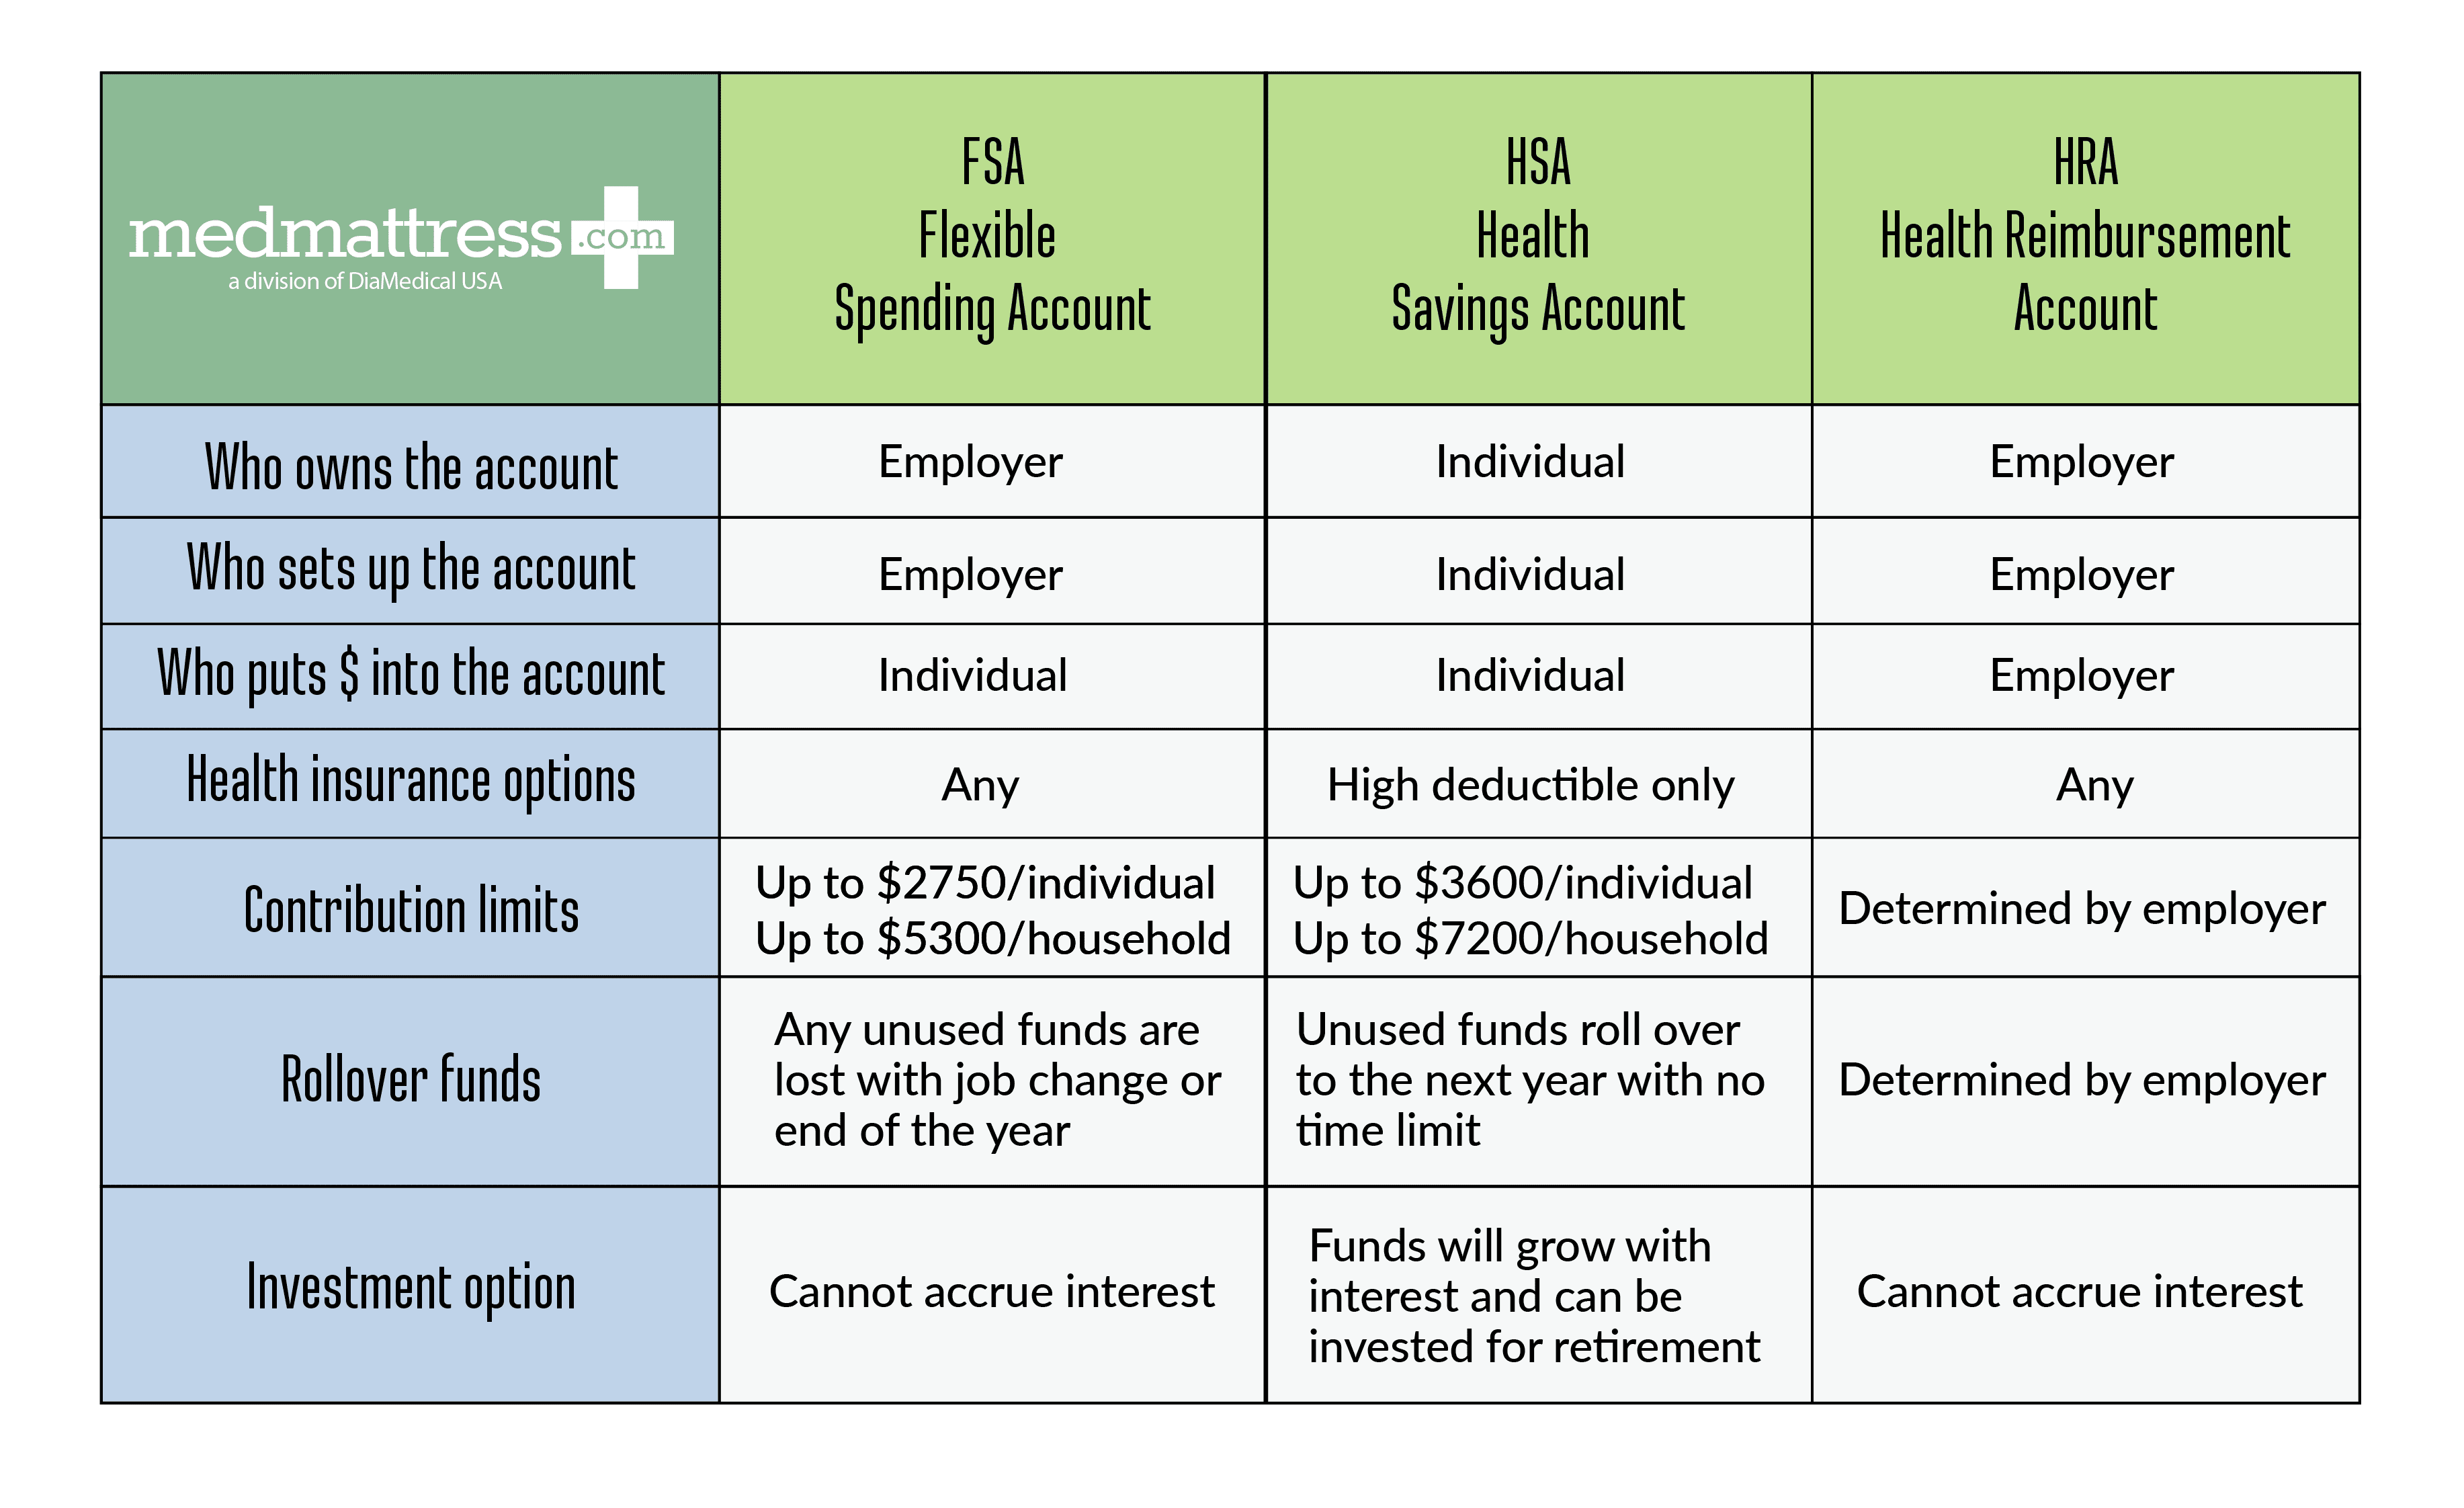 FSA Flexible Spending Account HSA Health Savings Account HRA Health Reimbursement Account Who owns the account Employer Individual Employer Who sets up the account Employer Individual Employer Who puts $ into the account Individual Individual Employer Health insurance options Any High deductible only Any Contribution limits Up to $2,750/individual Up to $5,300/household Up to $3,600/individual Up to $7,200/household Determined by employer Rollover funds Any unused funds are lost with job change or end of the year Unused funds roll over to the next year with no time limit Determined by employer Investment option Cannot accrue interest Funds will grow with interest and can be invested for retirement Cannot accrue interest